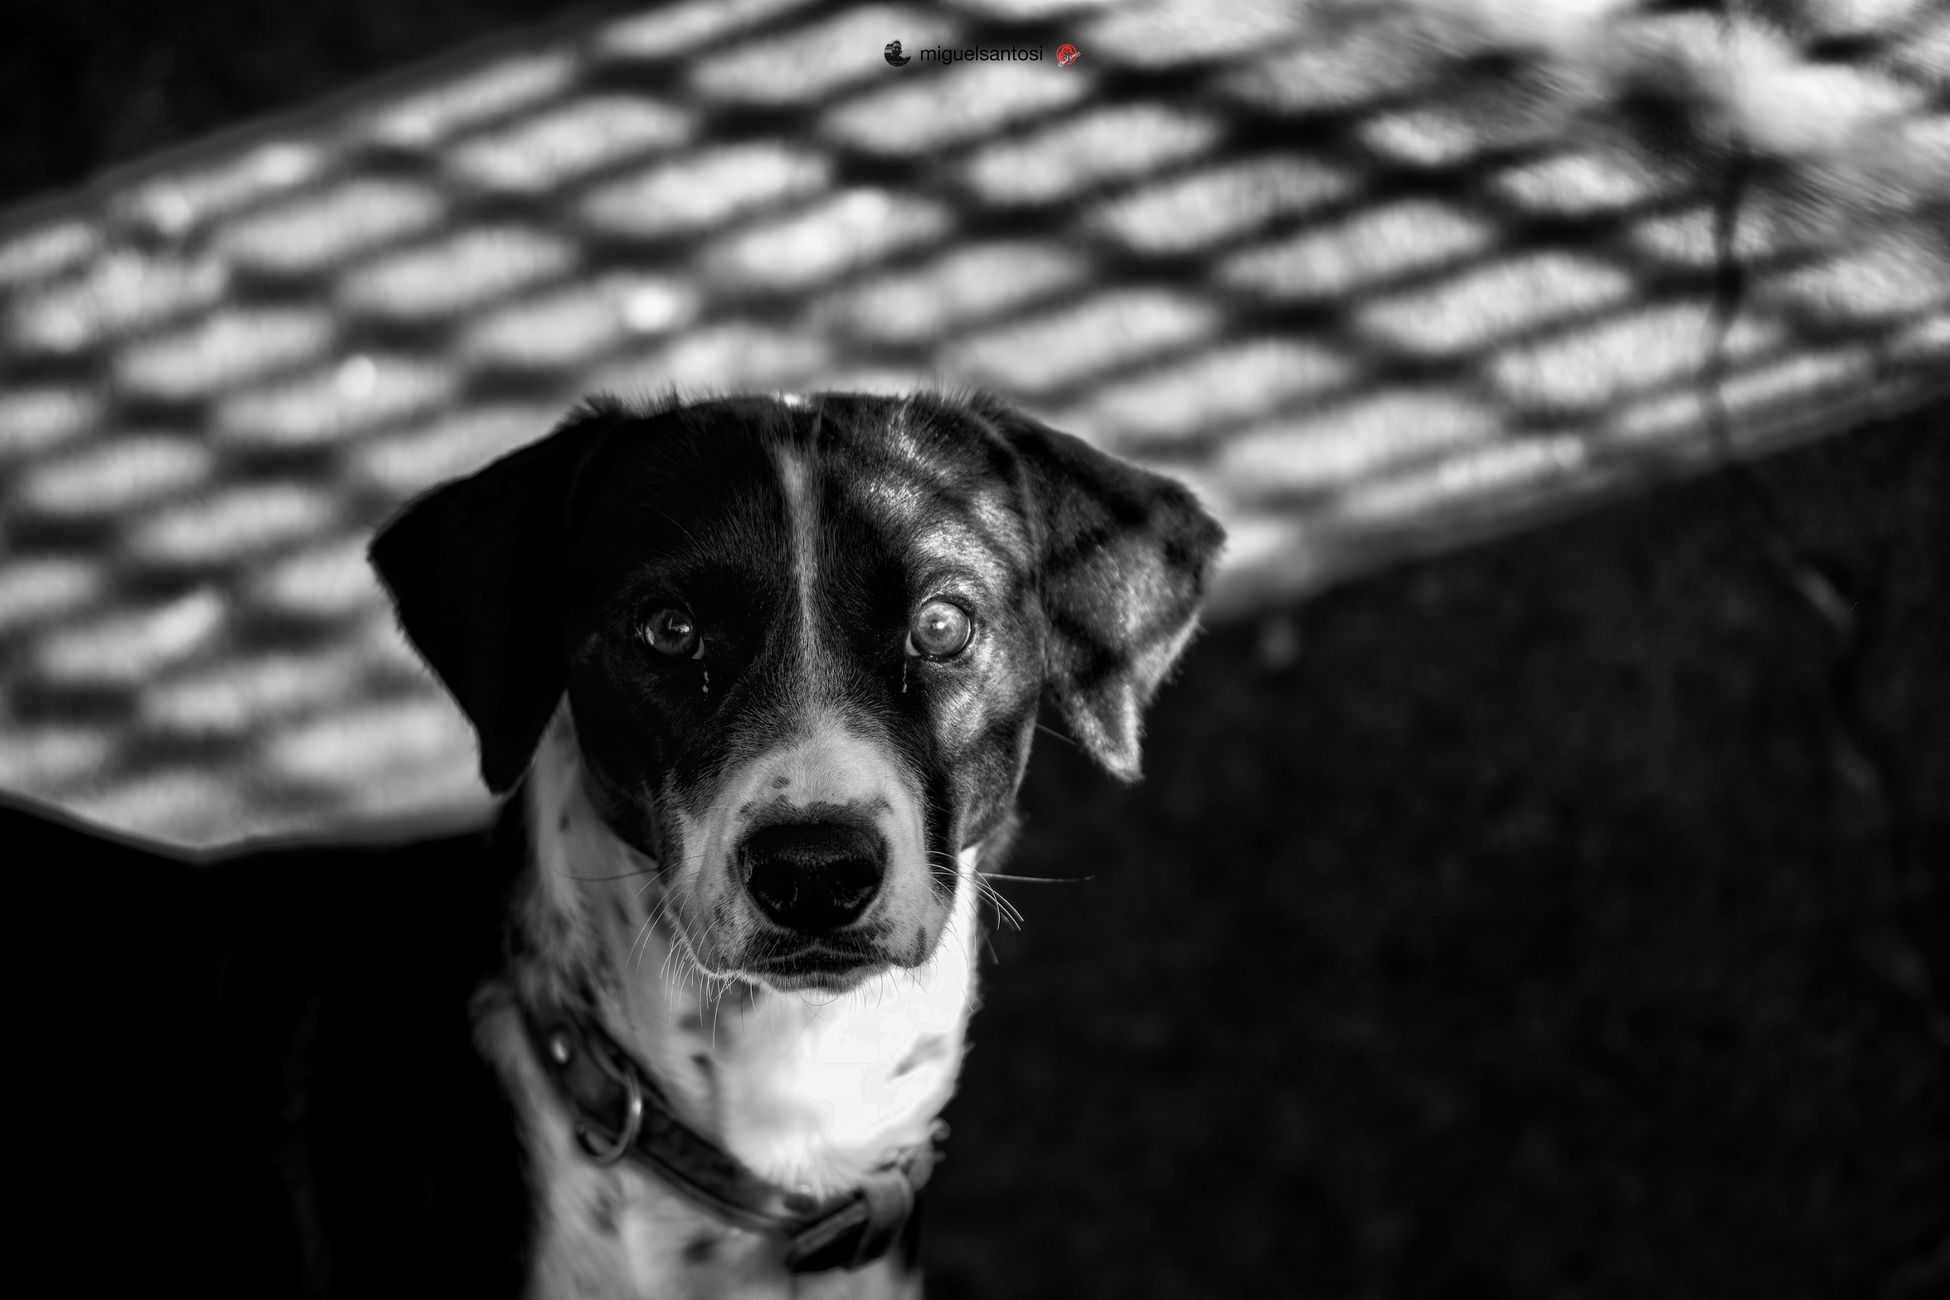 Doglover Dog Bw Bw_lover BW_photography Bnw Bnw_collection Bnw_captures Bnw_life Bnwphotography Blackandwhite Black And White Black & White Pretoebranco Preto & Branco Pretoebrancofotografia Fotografiapretoebranco Cao Dogs Shadow Shadows & Lights Shadow And Light Dog Pets Domestic Animals One Animal Outdoors Portrait Looking At Camera Close-up